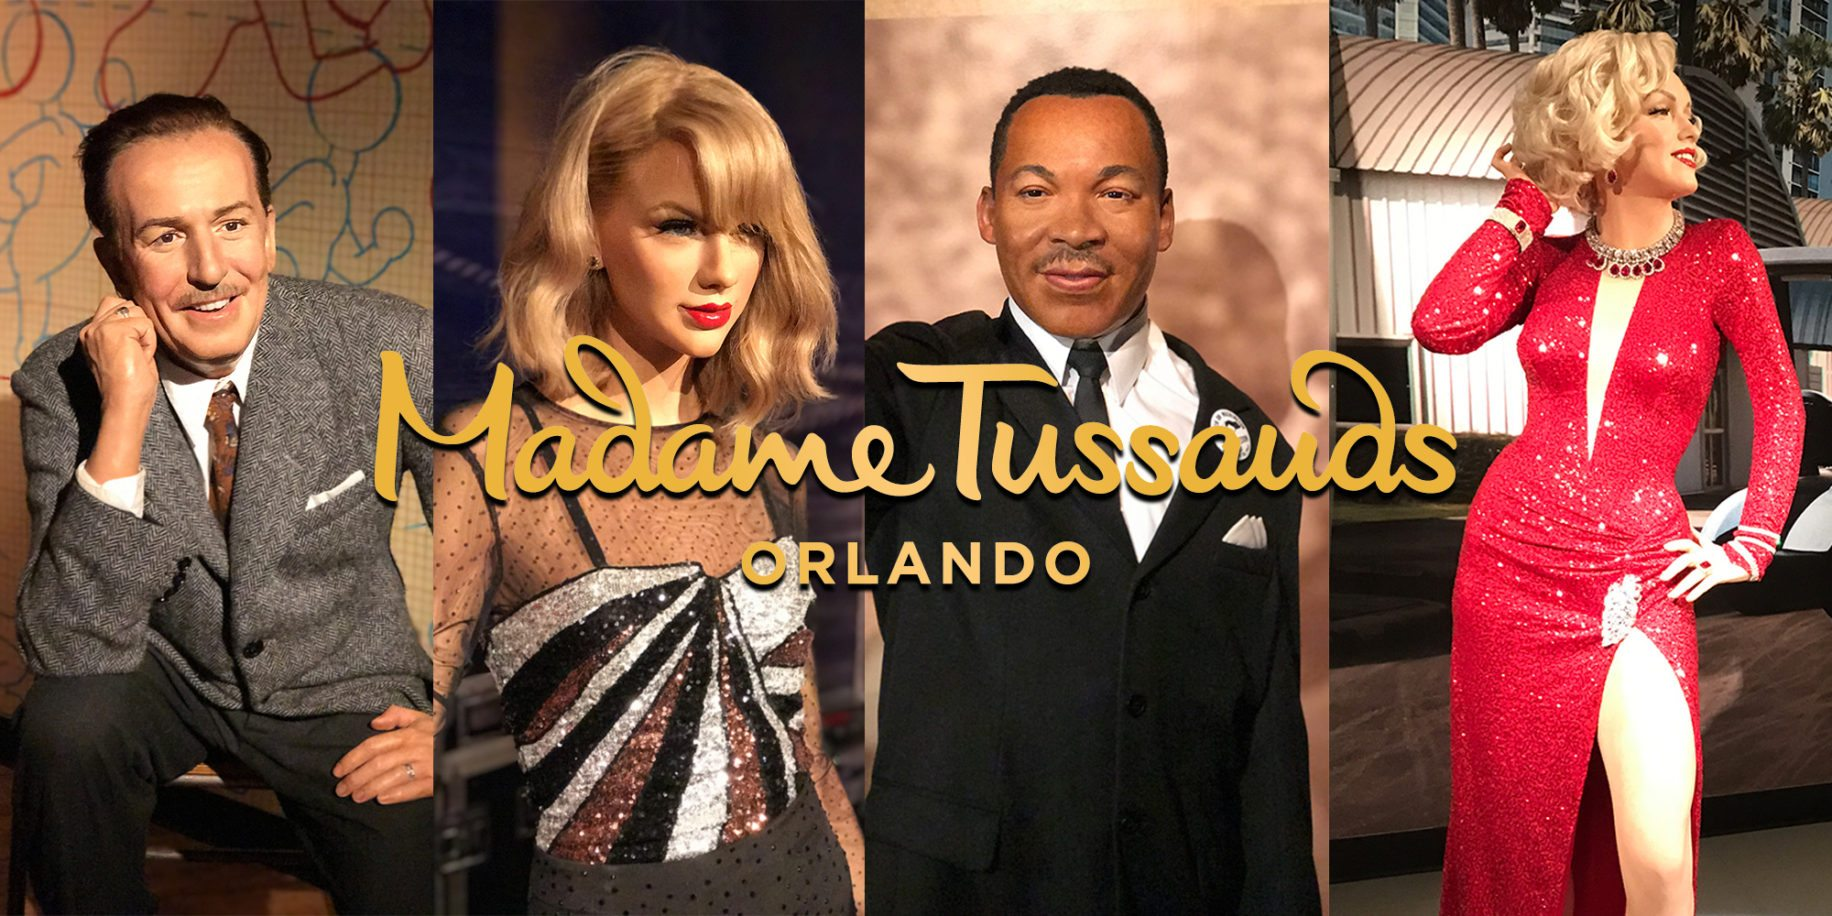 A Geek In Orlando: Top Five Reasons to Visit Madam Tussauds